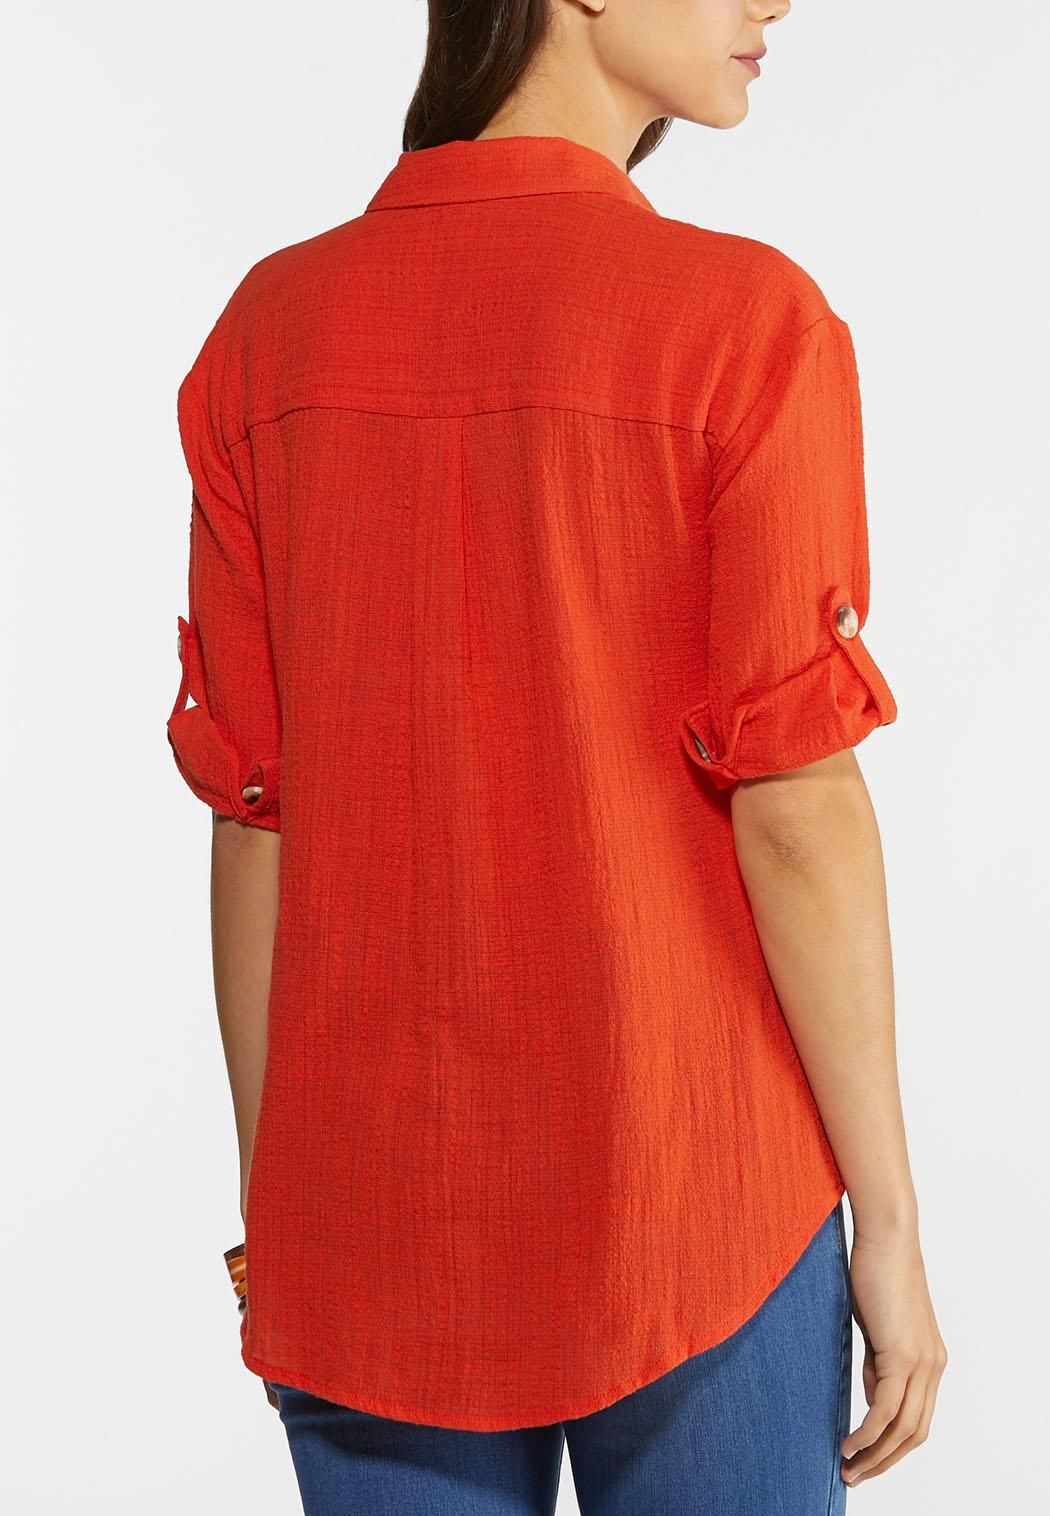 Plus Size Casual Summer Top (Item #44279790)